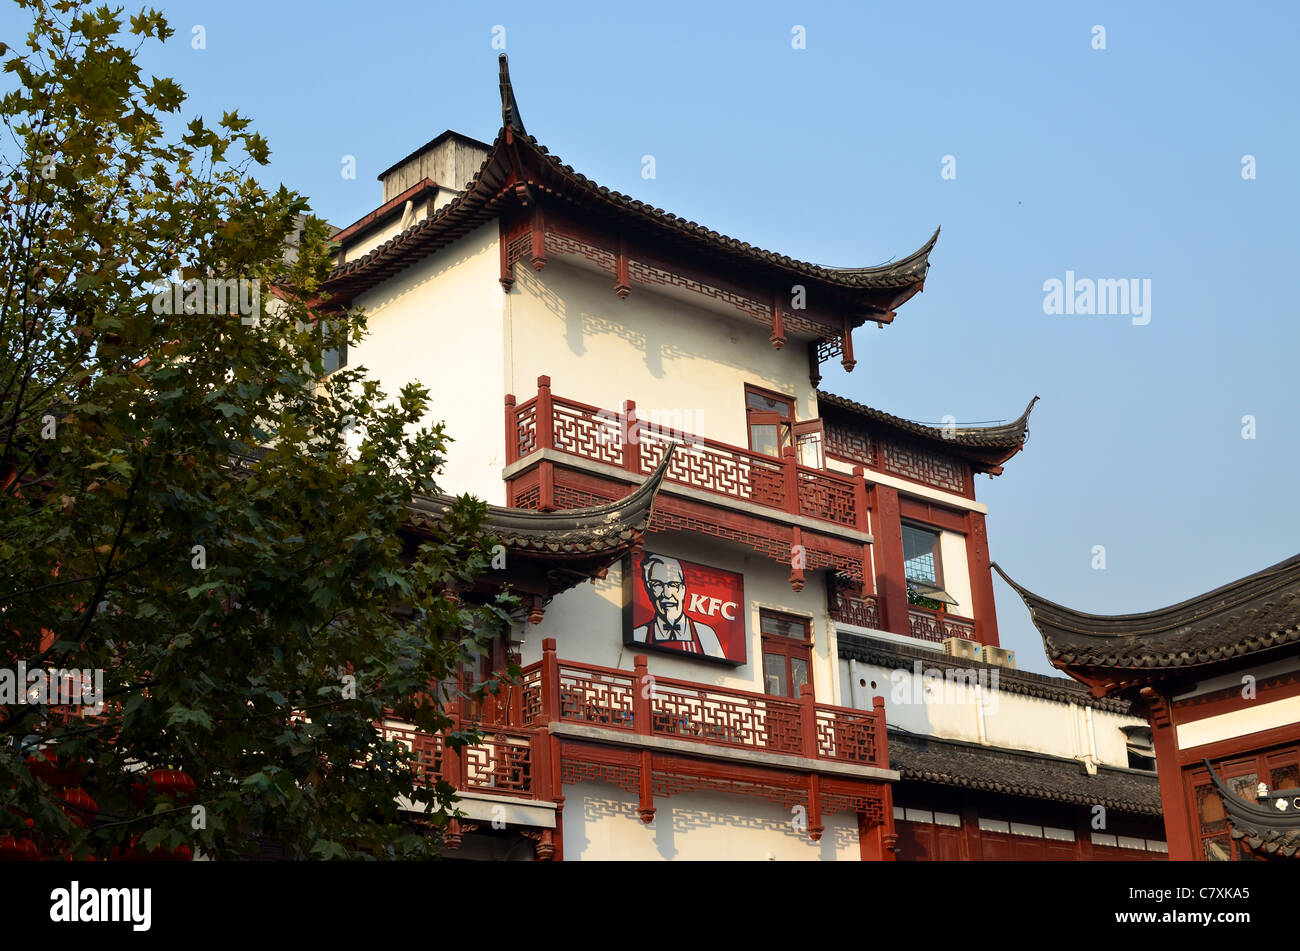 An advertising board for KFC is in contrast to the traditional Chinese architecture at Yuyuan Gardens. - Stock Image